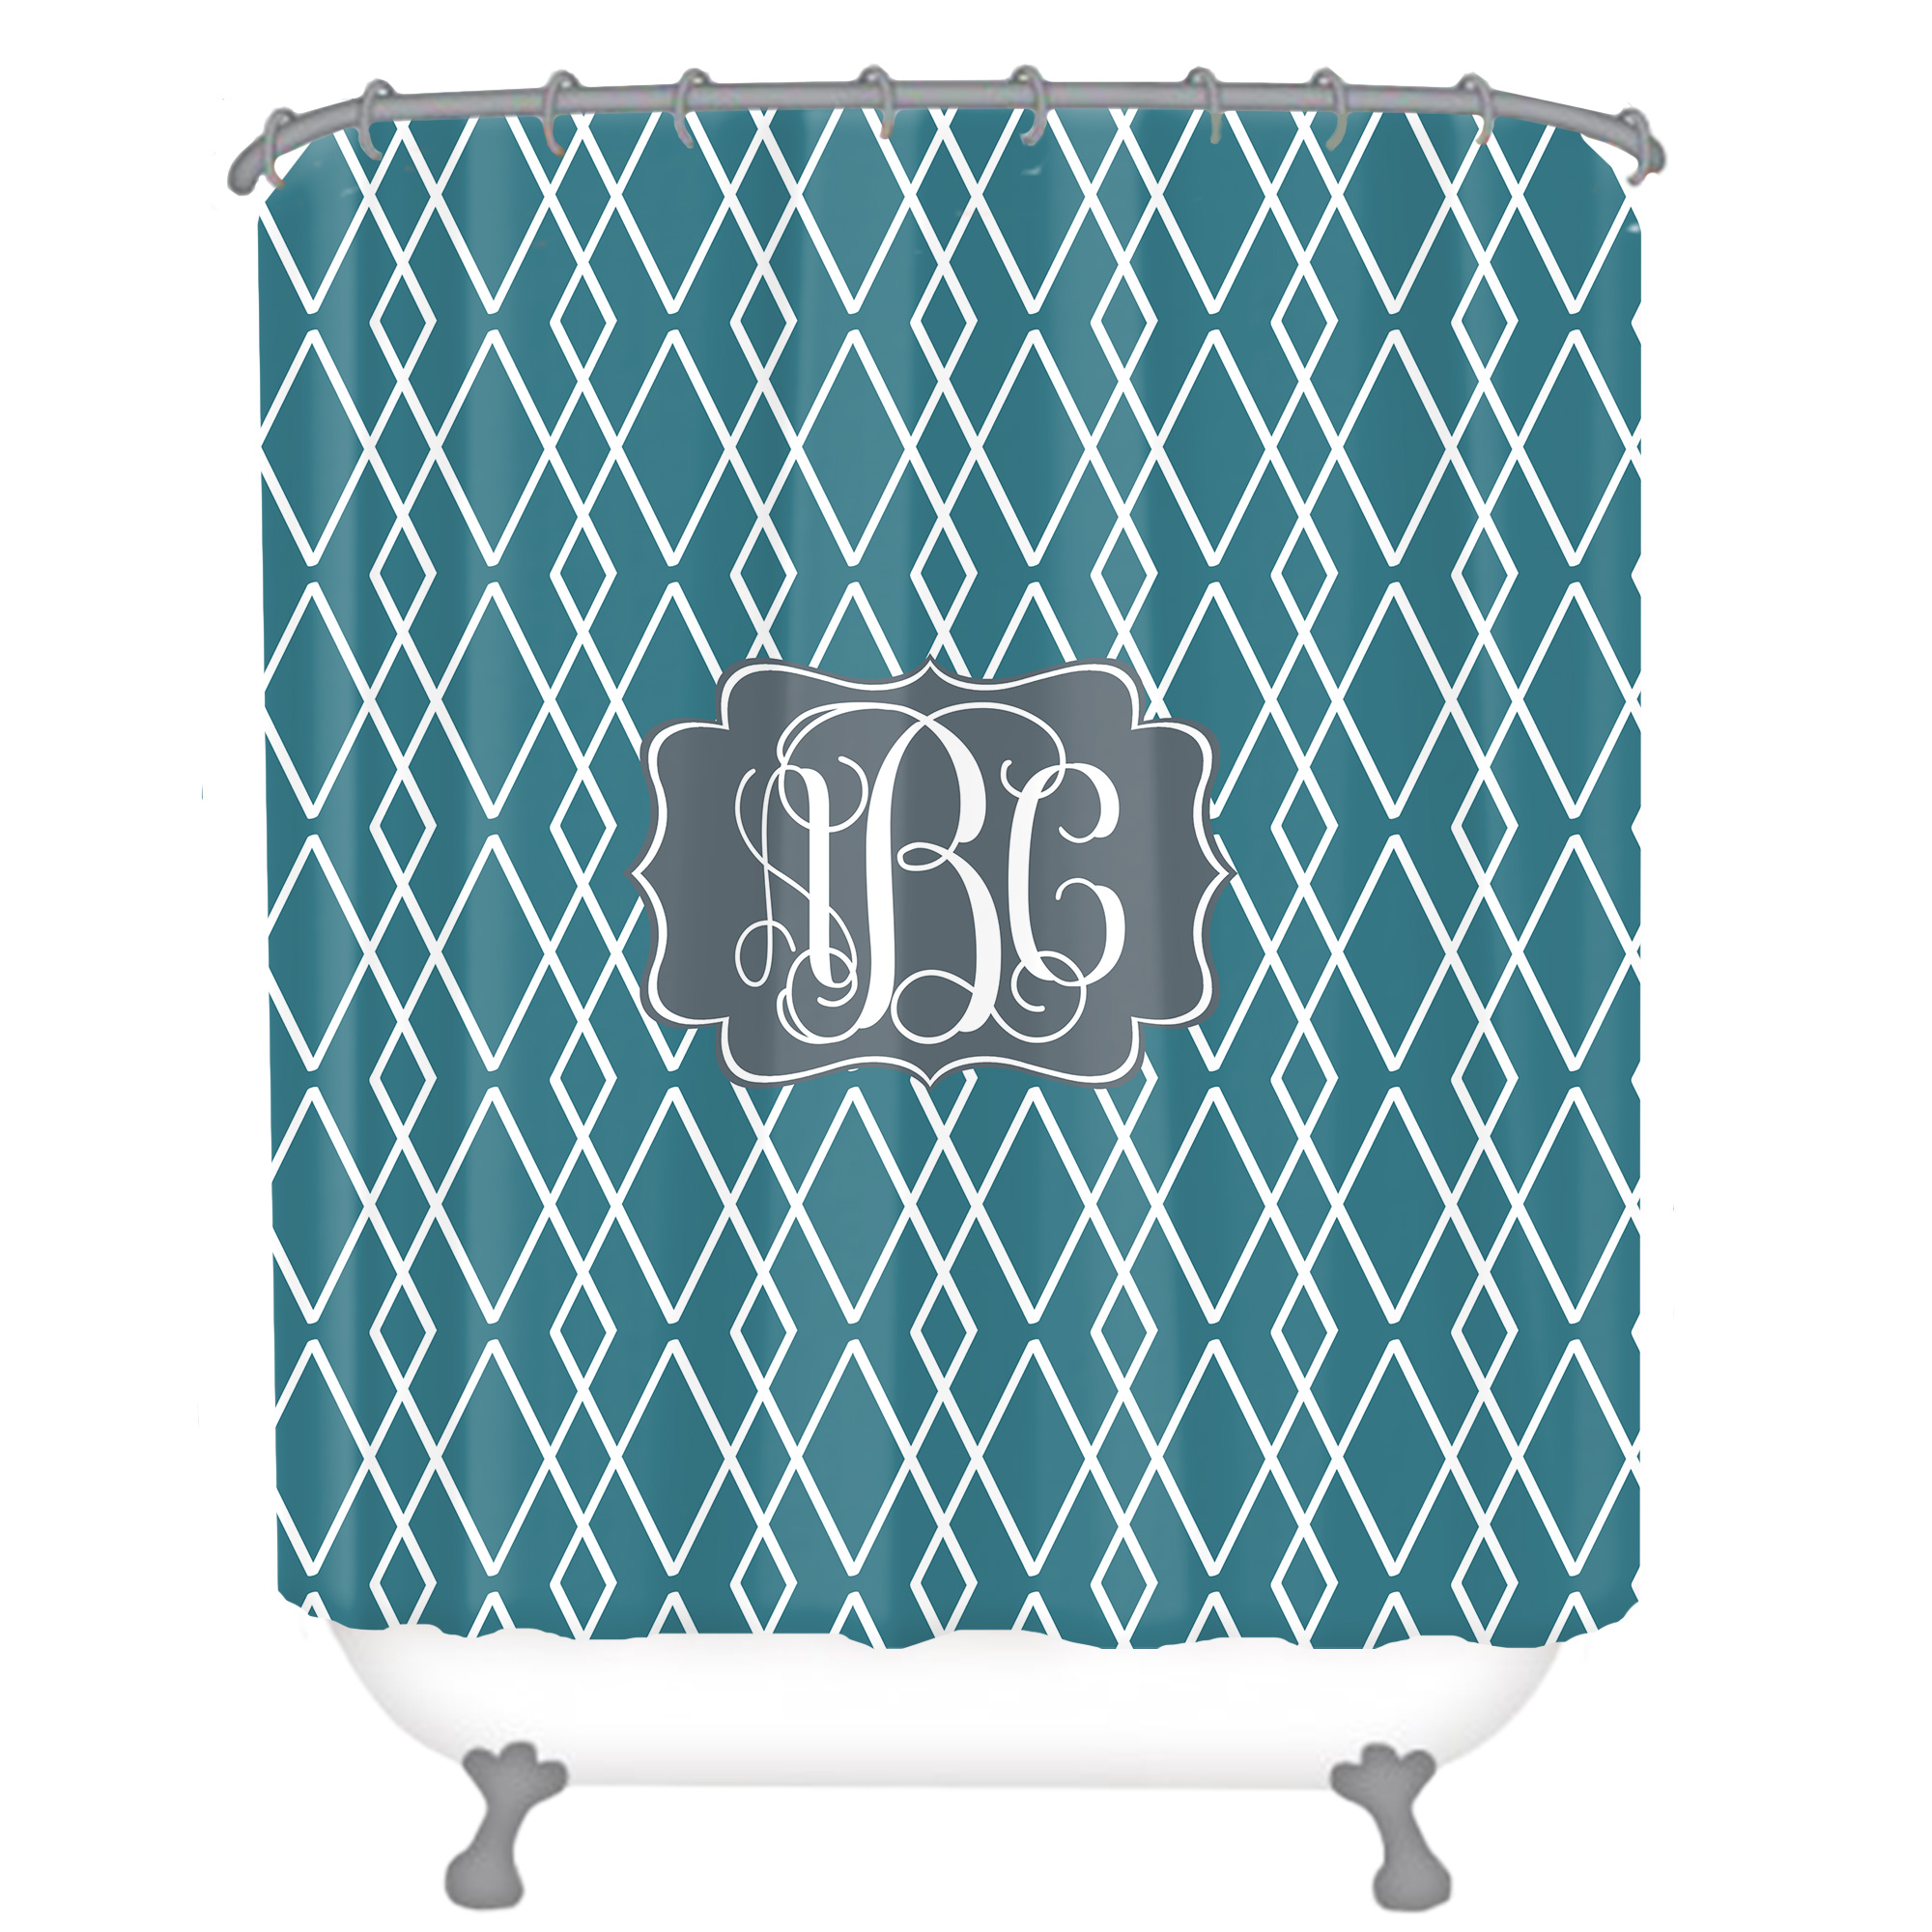 personalized shower curtain monogrammed shower curtain